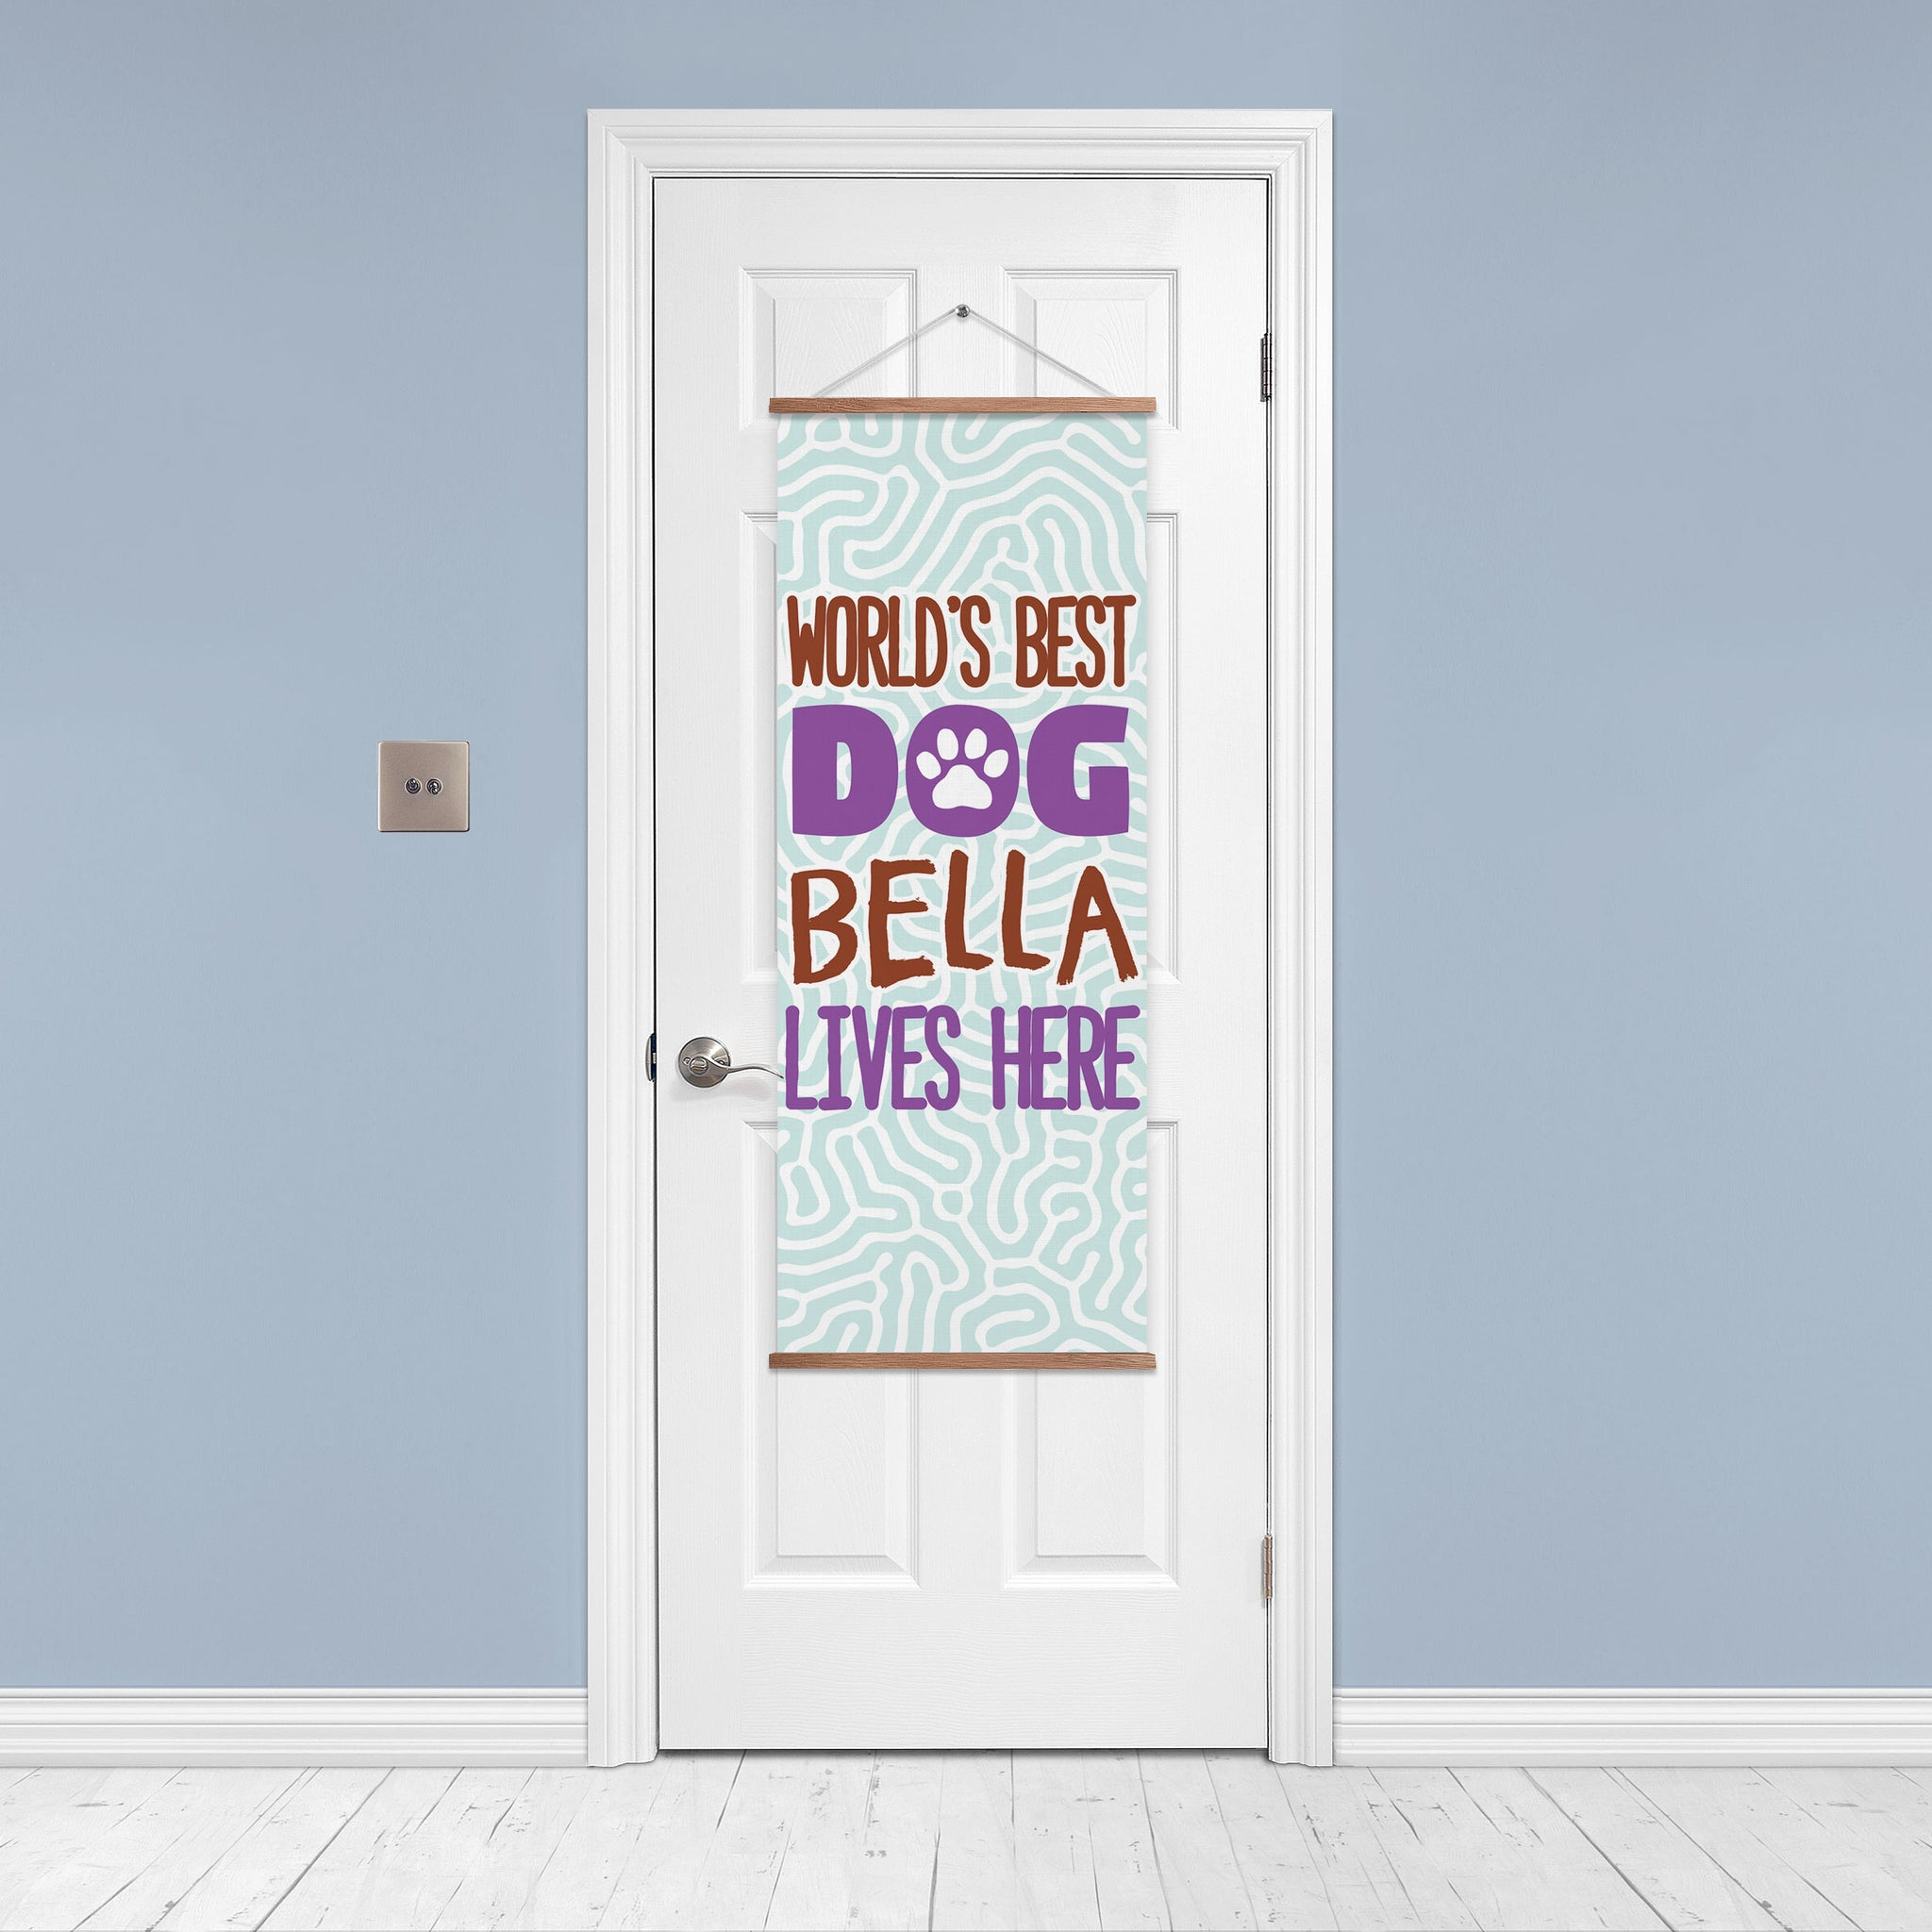 Personalized World's Best Dog Door Banner